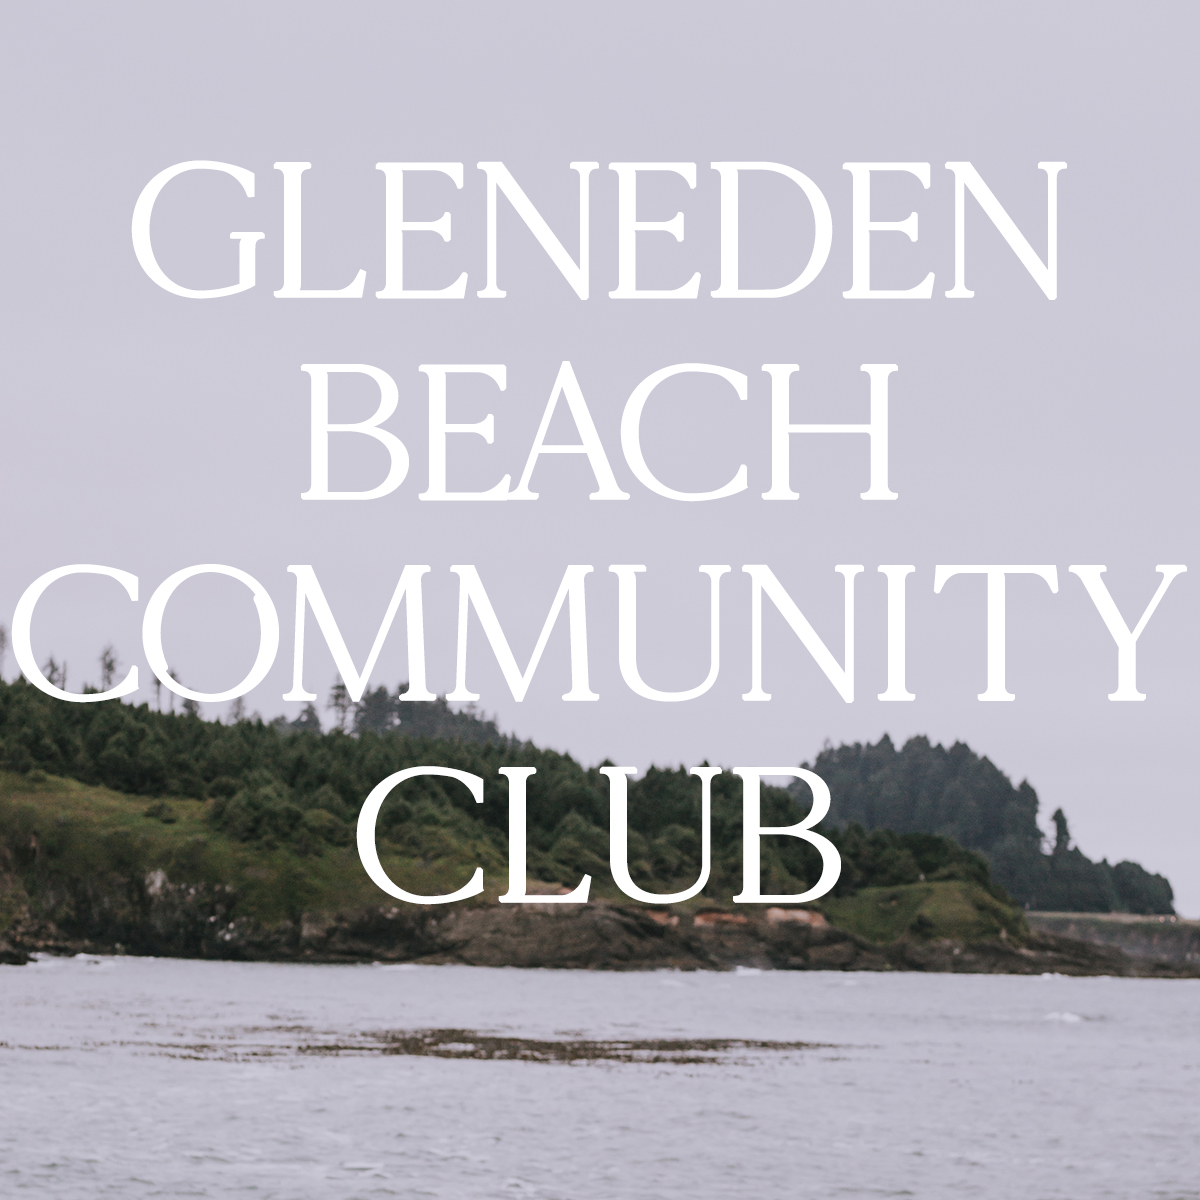 Gleneden Beach Community Club - We are a non-profit organization established in 1947 as a social group for those living year-around in Gleneden Beach and for those who have vacation homes in the area.